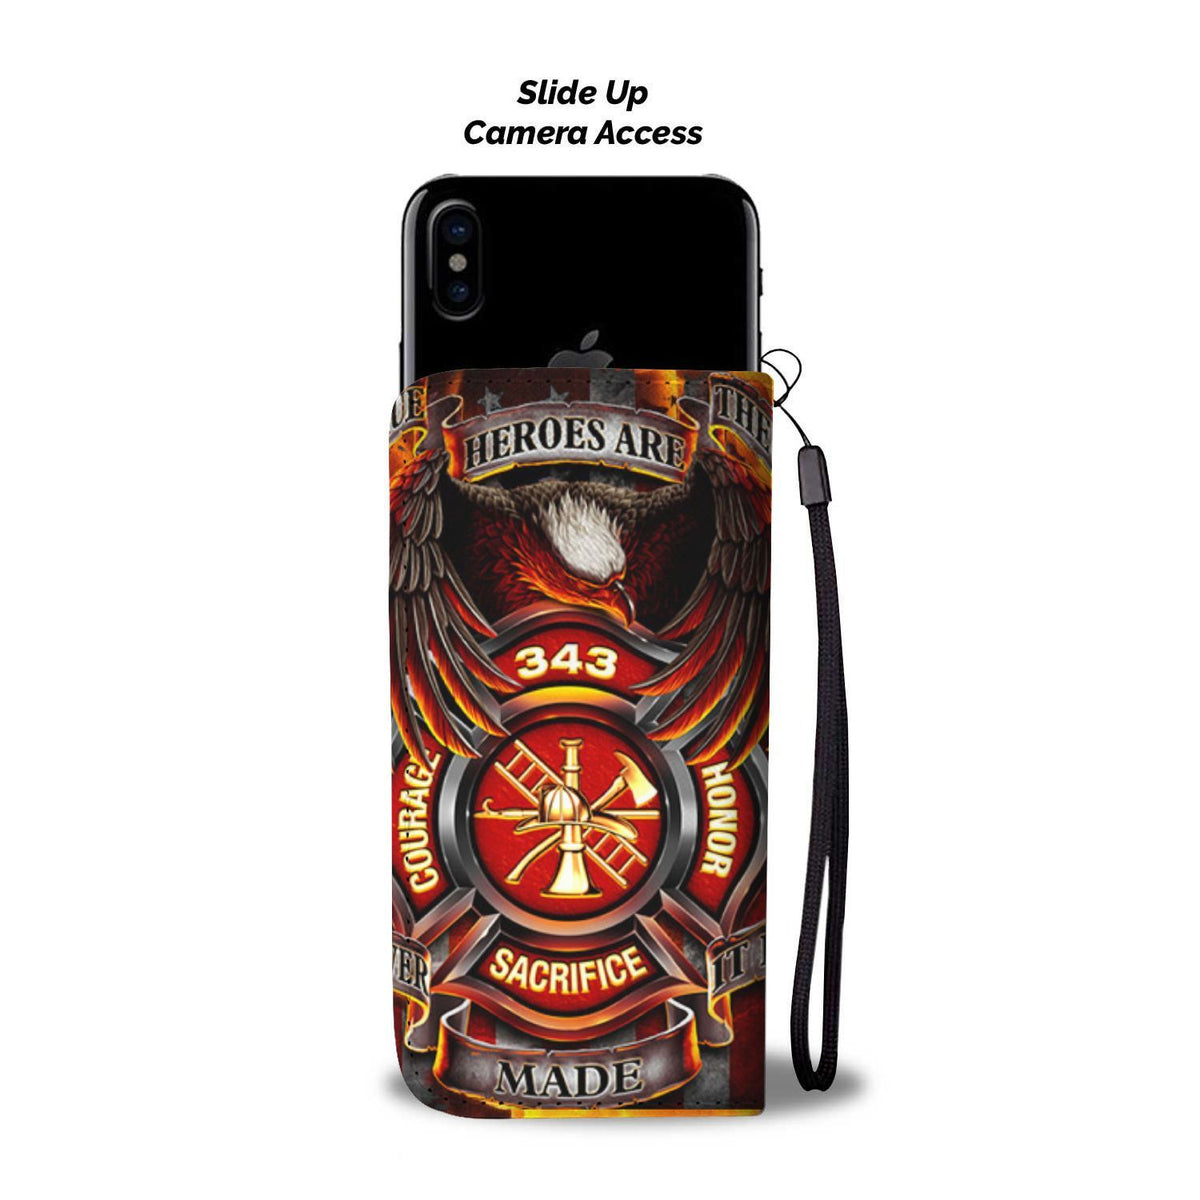 Pacific Pike -  Heroes Are Made Custom Wallet Phone Case  -  iPhone X / Xs  -  Wallet Case